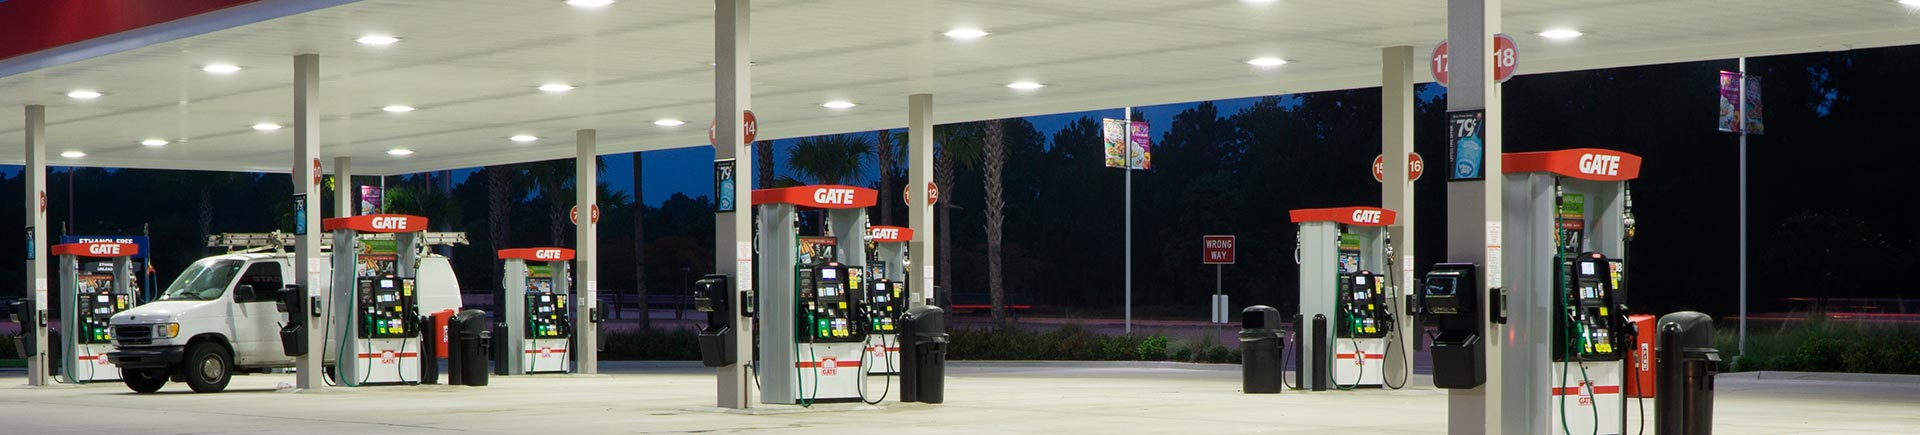 A Gate Petroleum gas station at night